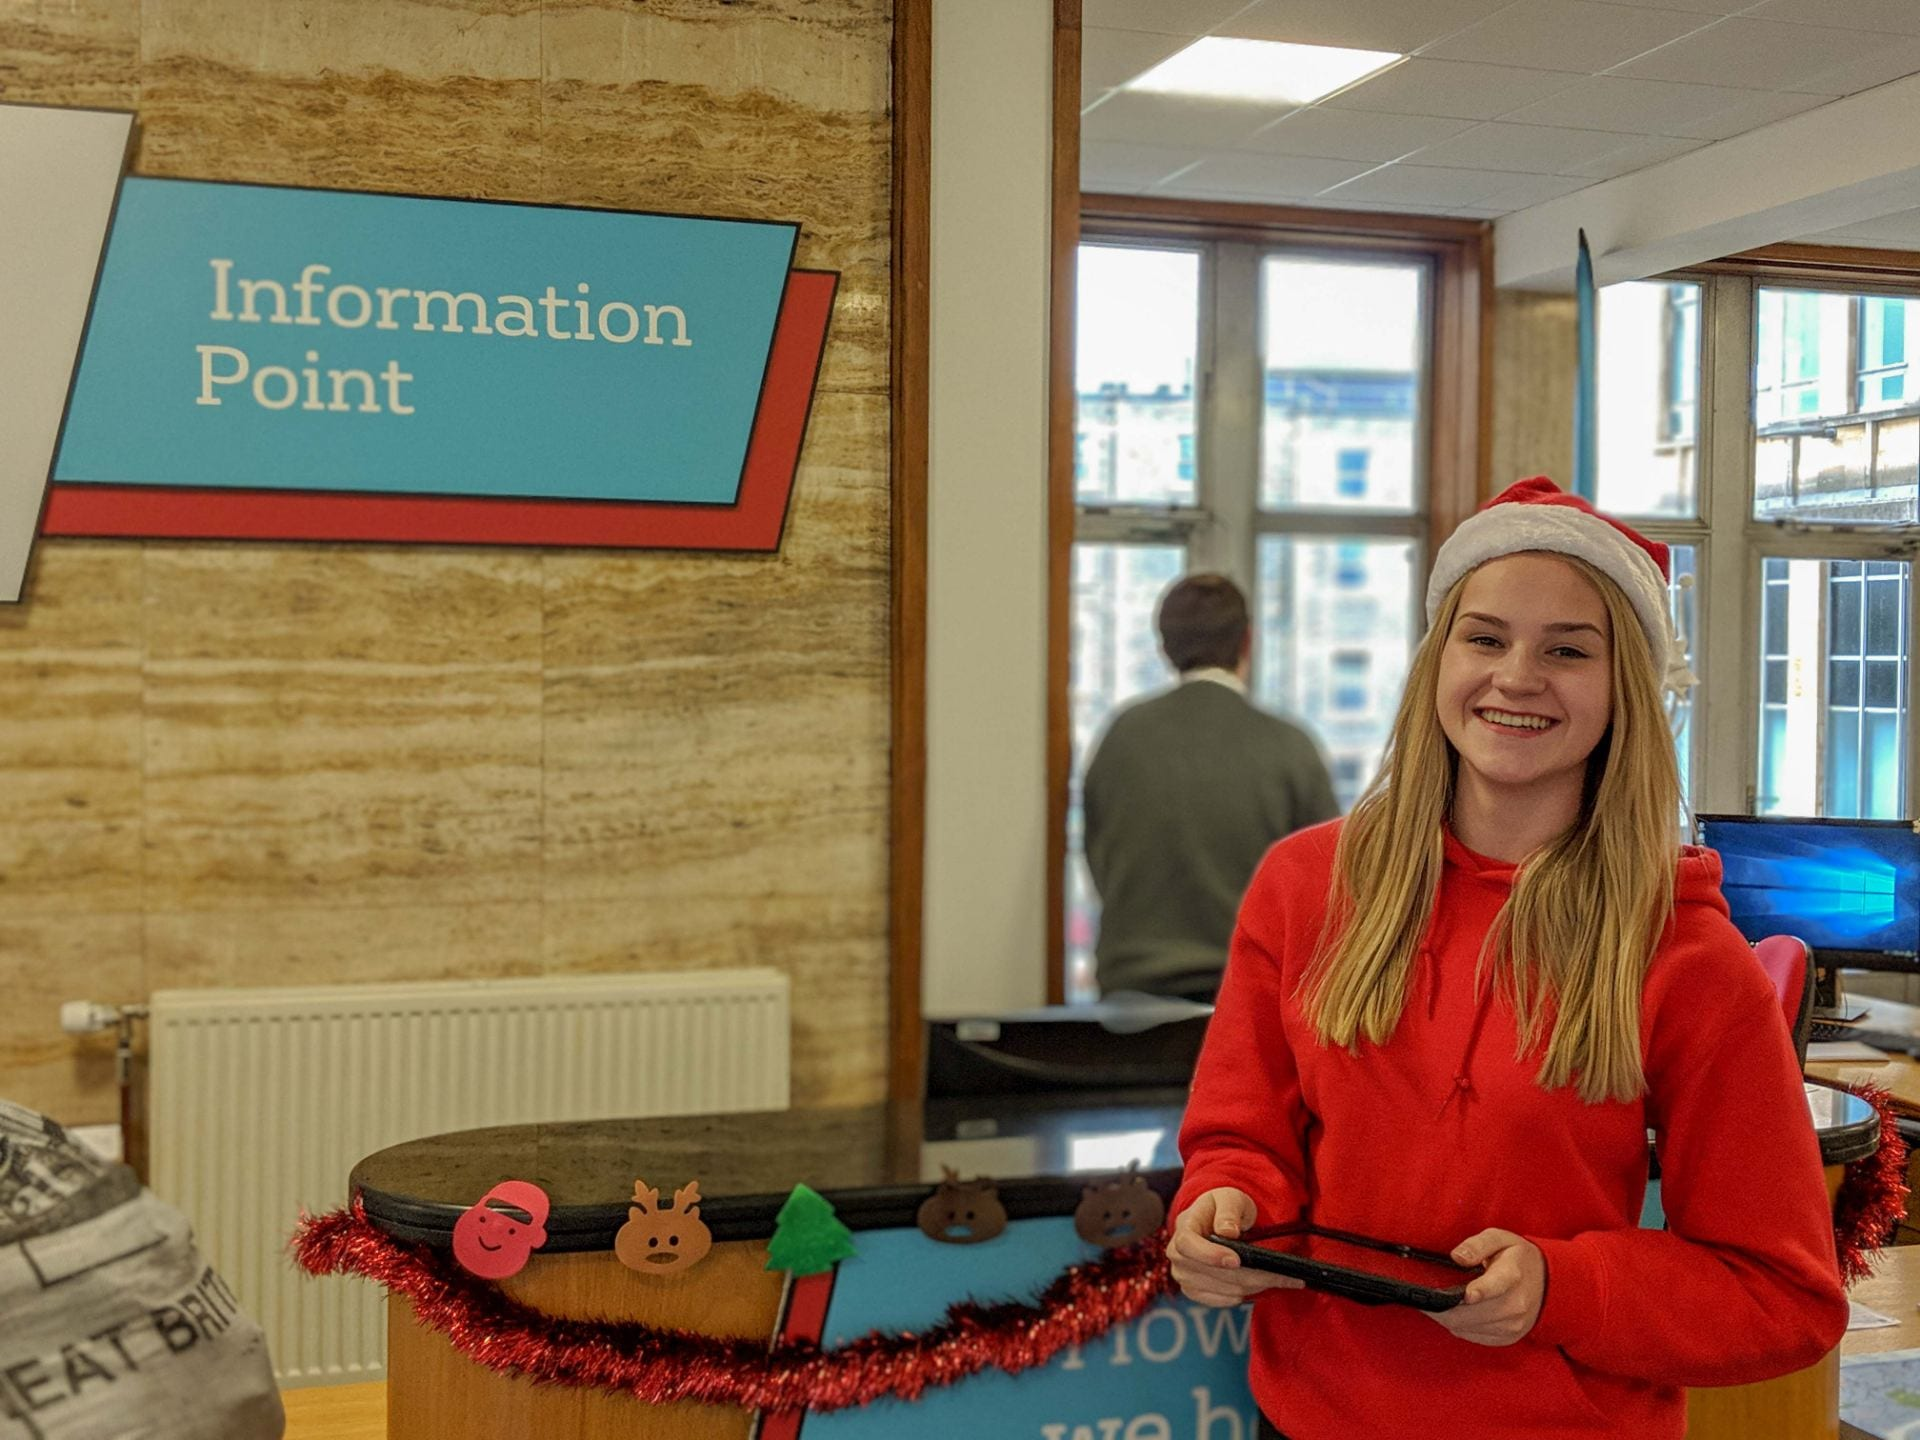 Olivia stands in front of the Information Point desk with an iPad in her hands